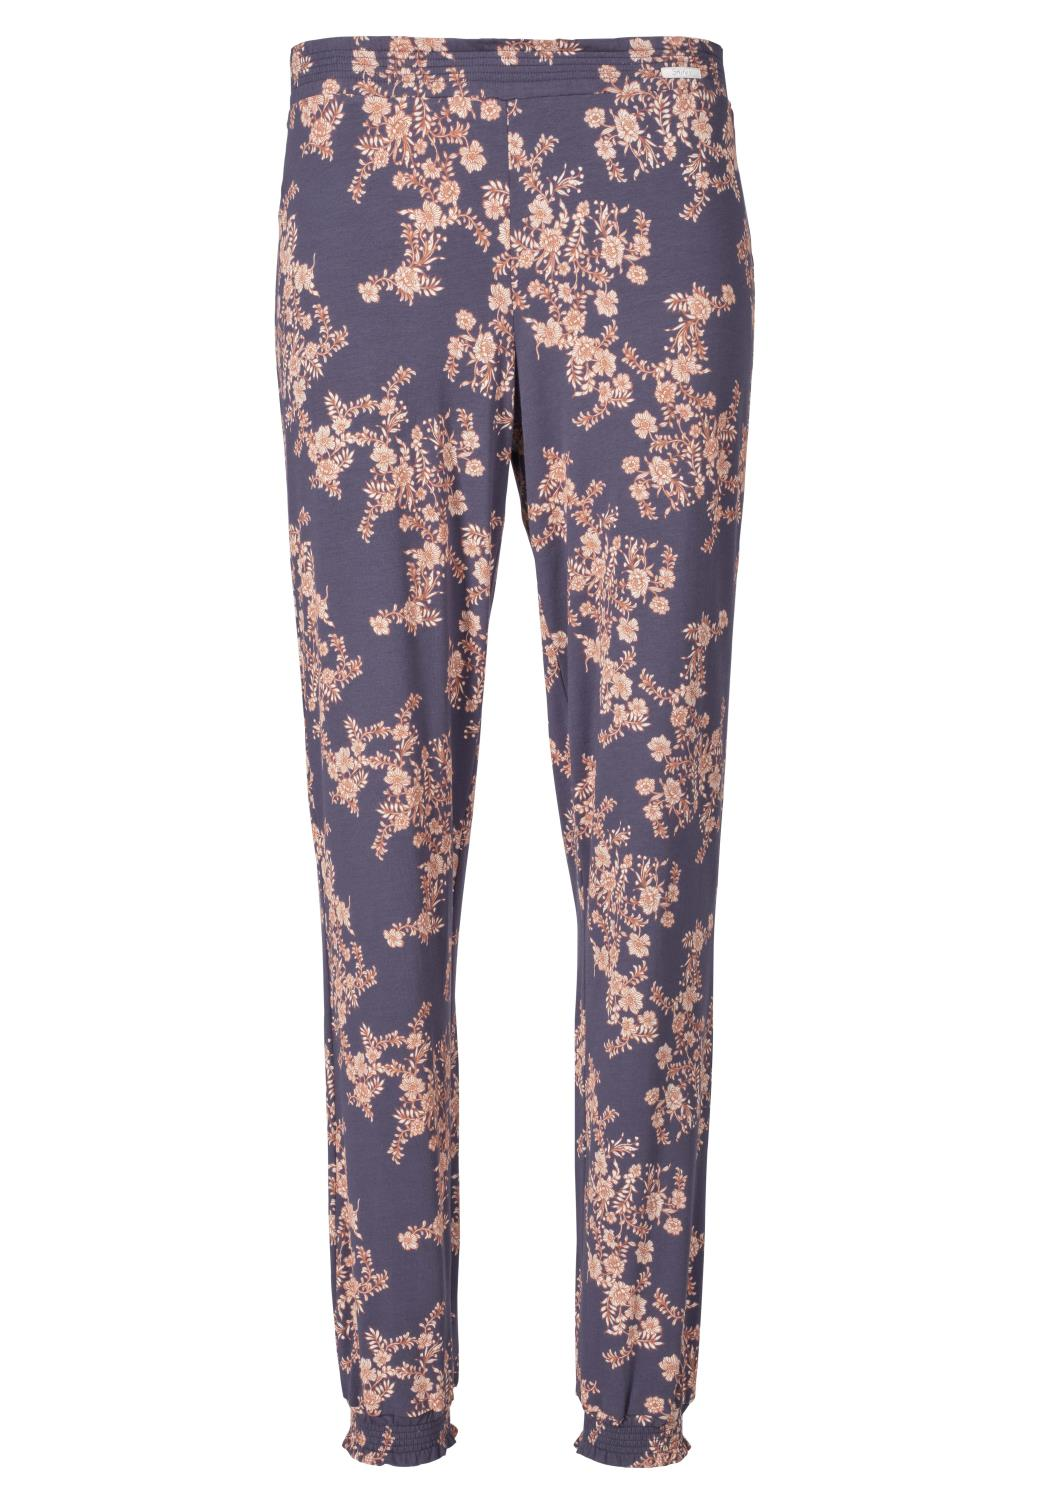 Skiny L. pants long, purpose sleep, purple flower